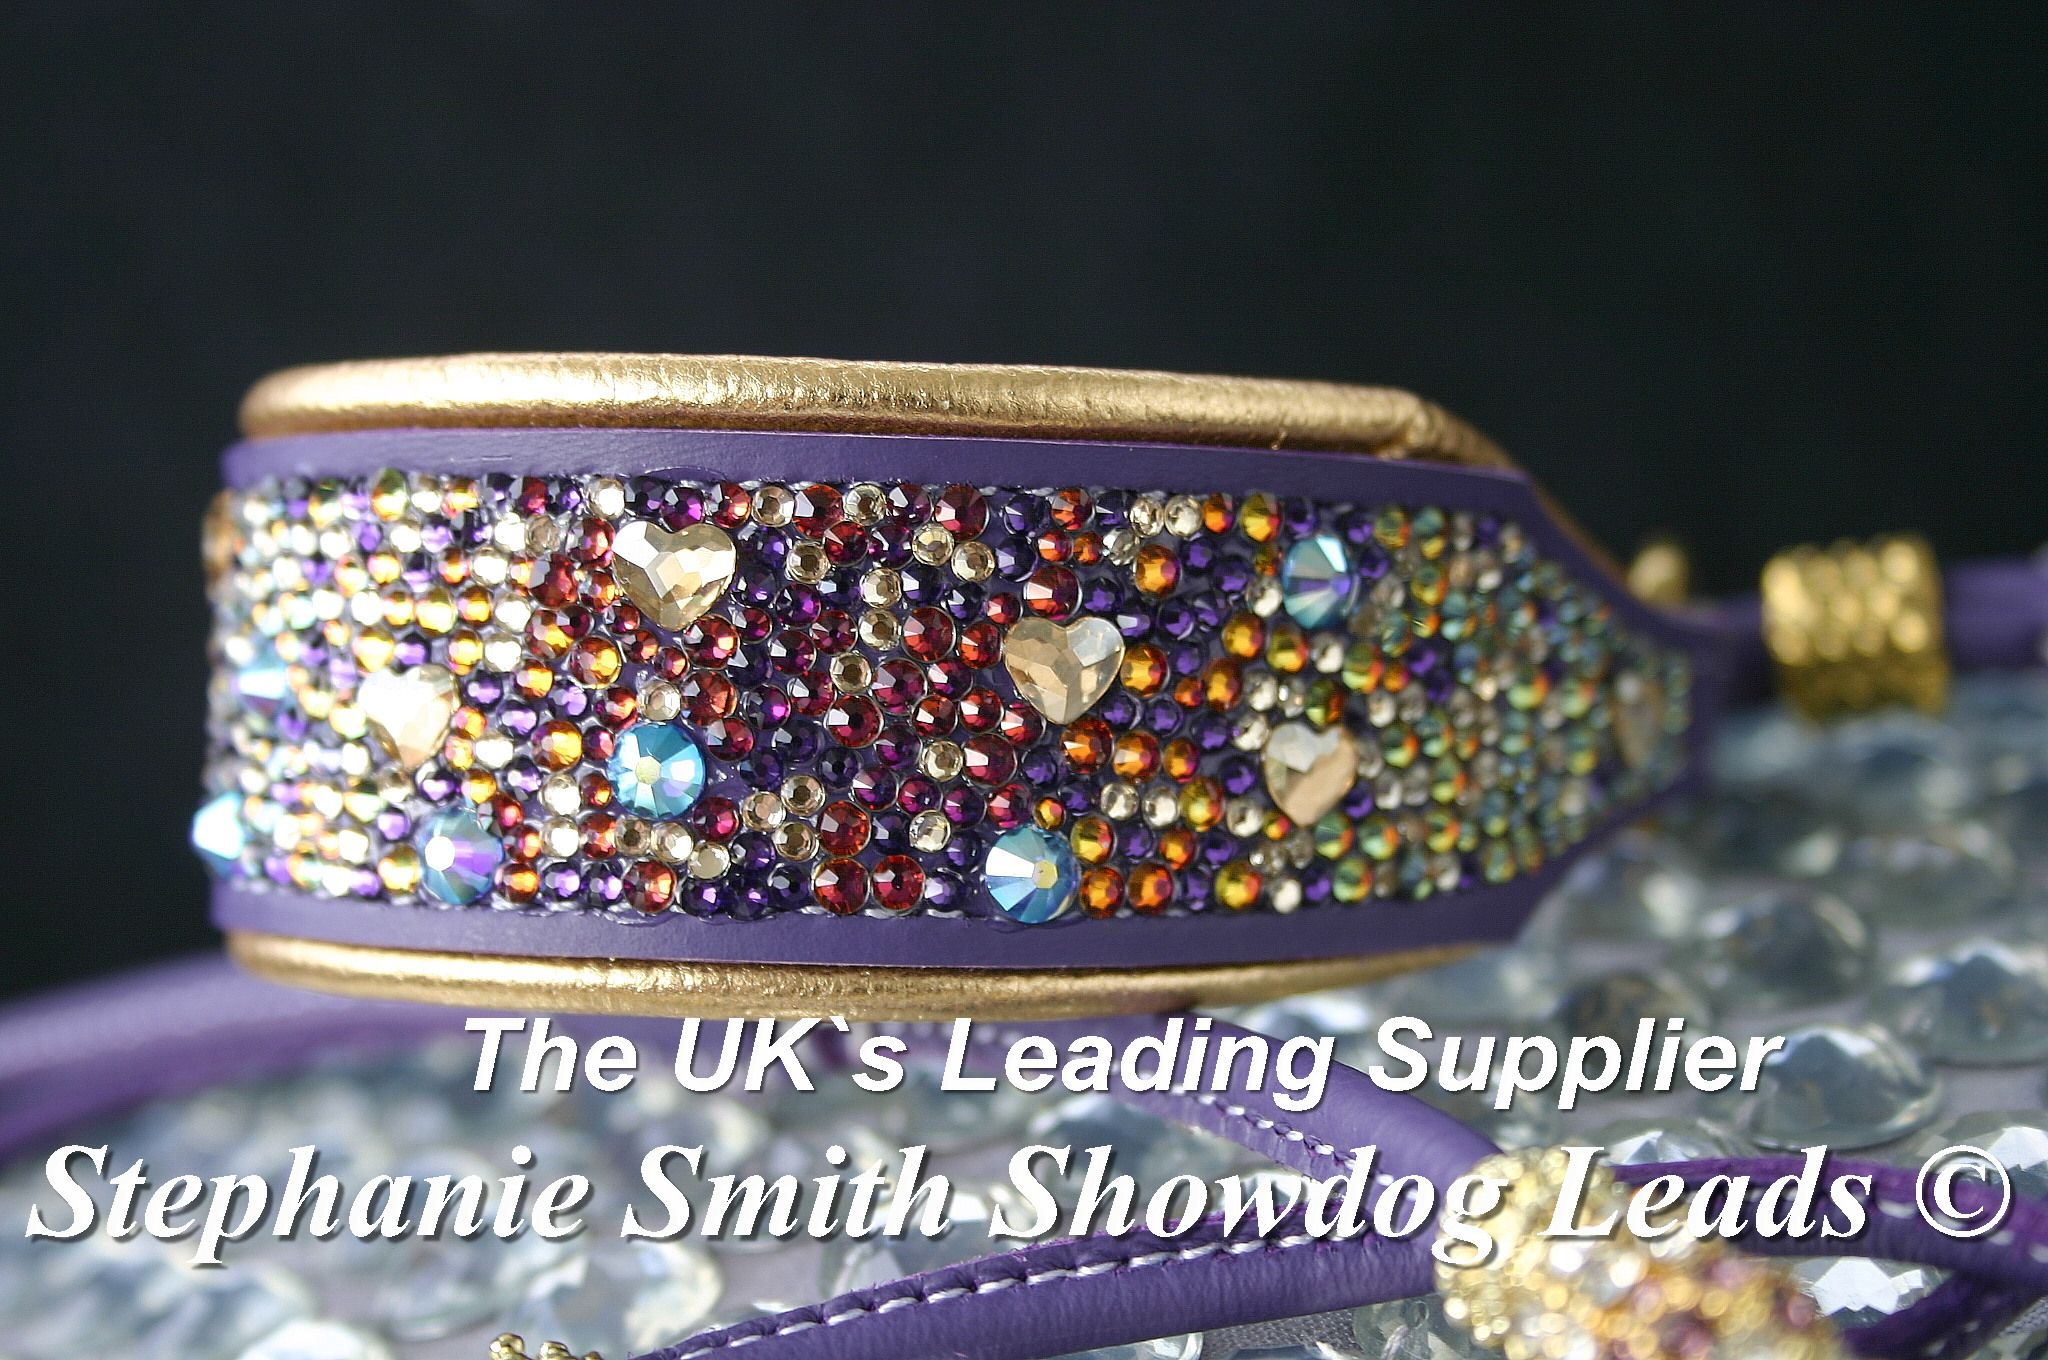 ebce350643fe Swarovski crystal dog collar with over 1500 individually placed and set  Swarovski Crystals showdogleads.weebly.com